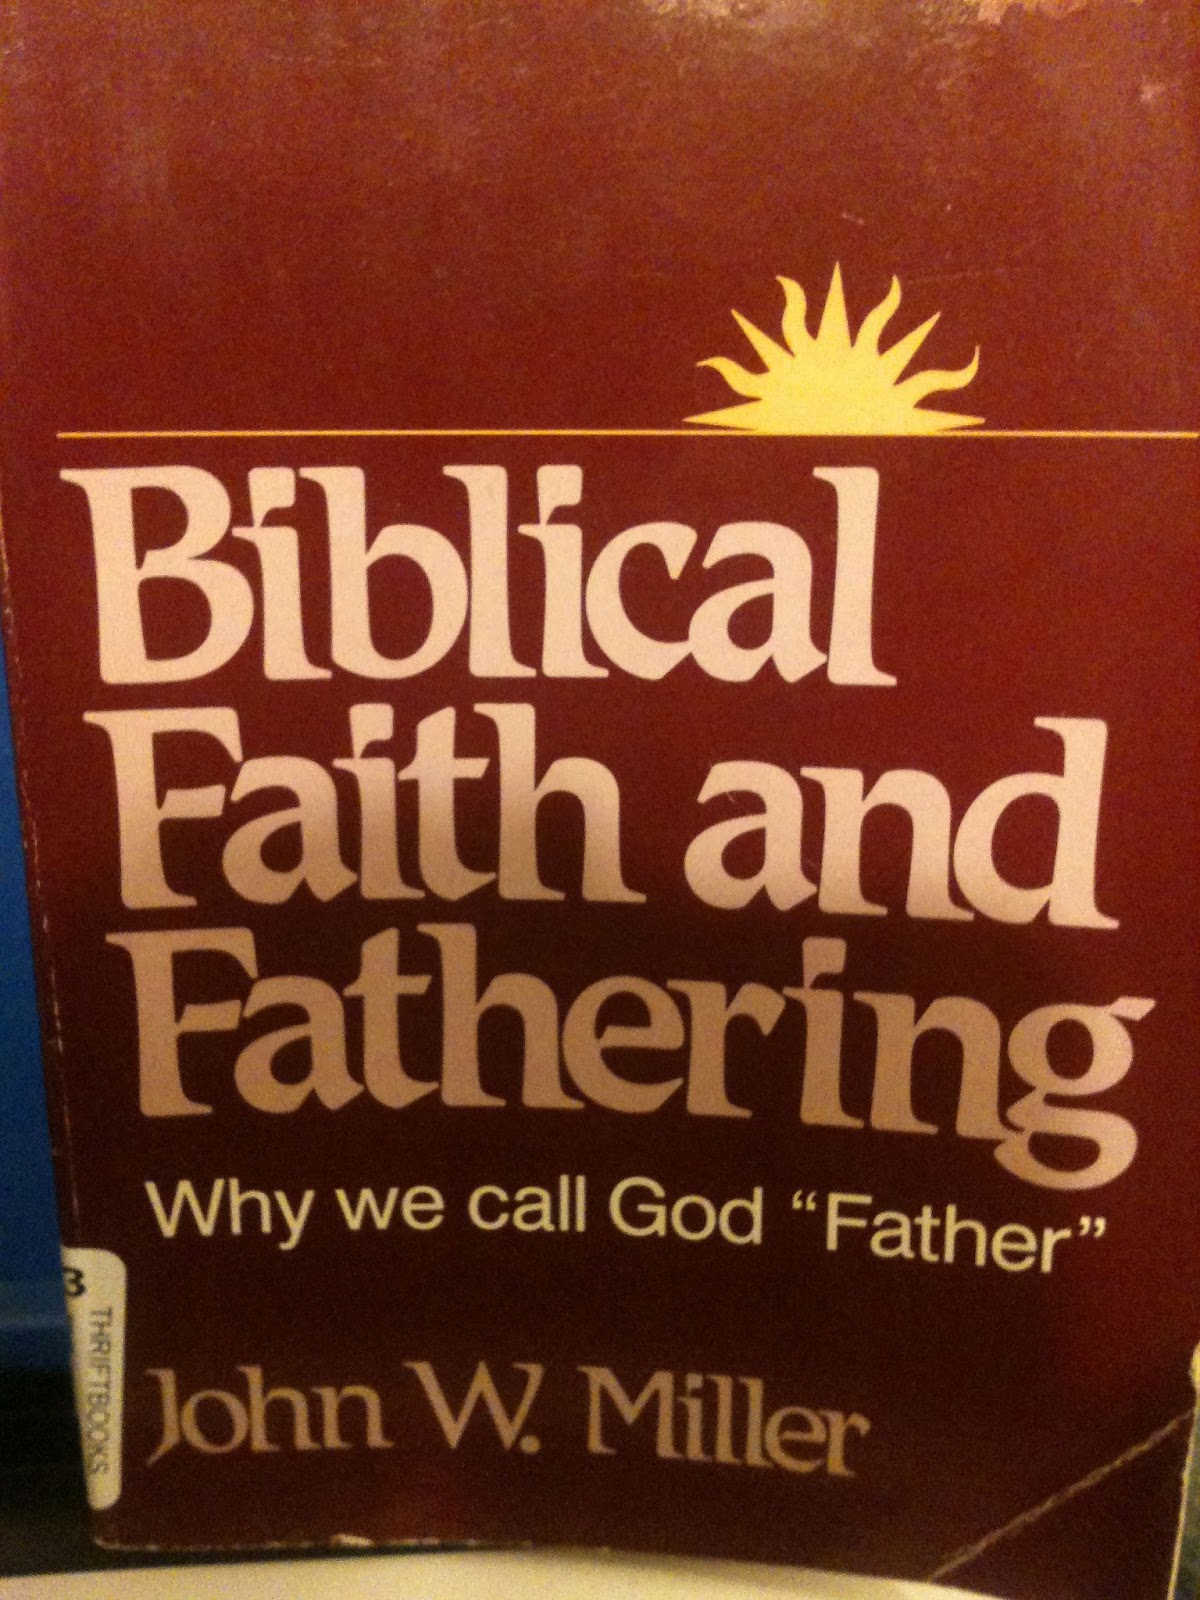 Religious Quotes About Faith The Sacred Page Biblical Faith And Fathering